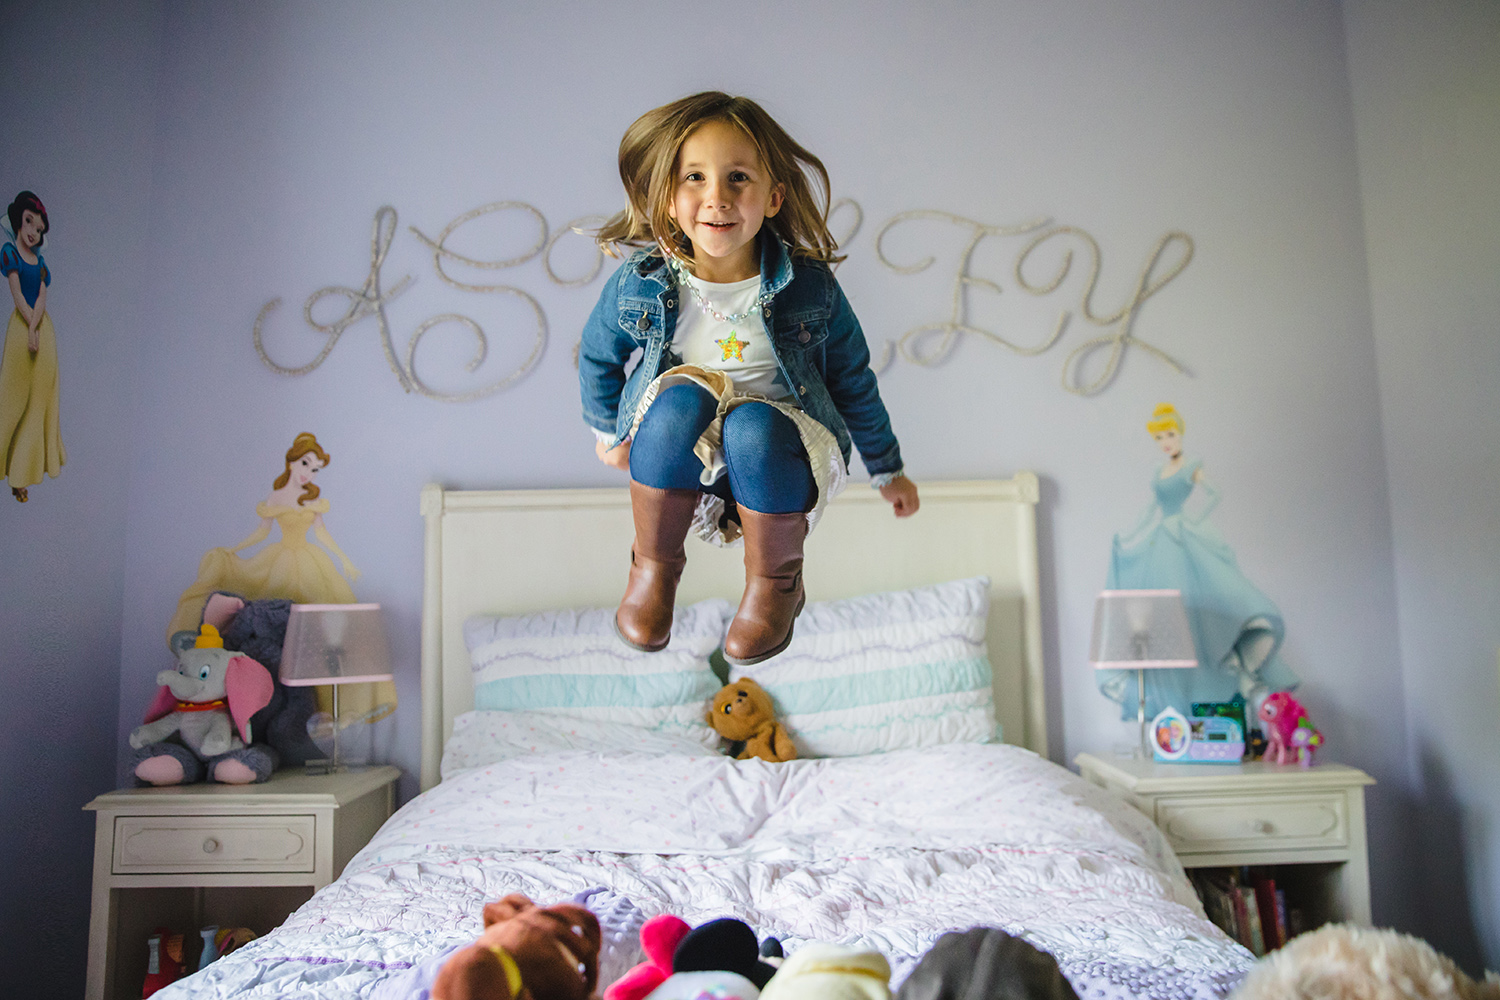 girl jumping on the bed in her bedroom